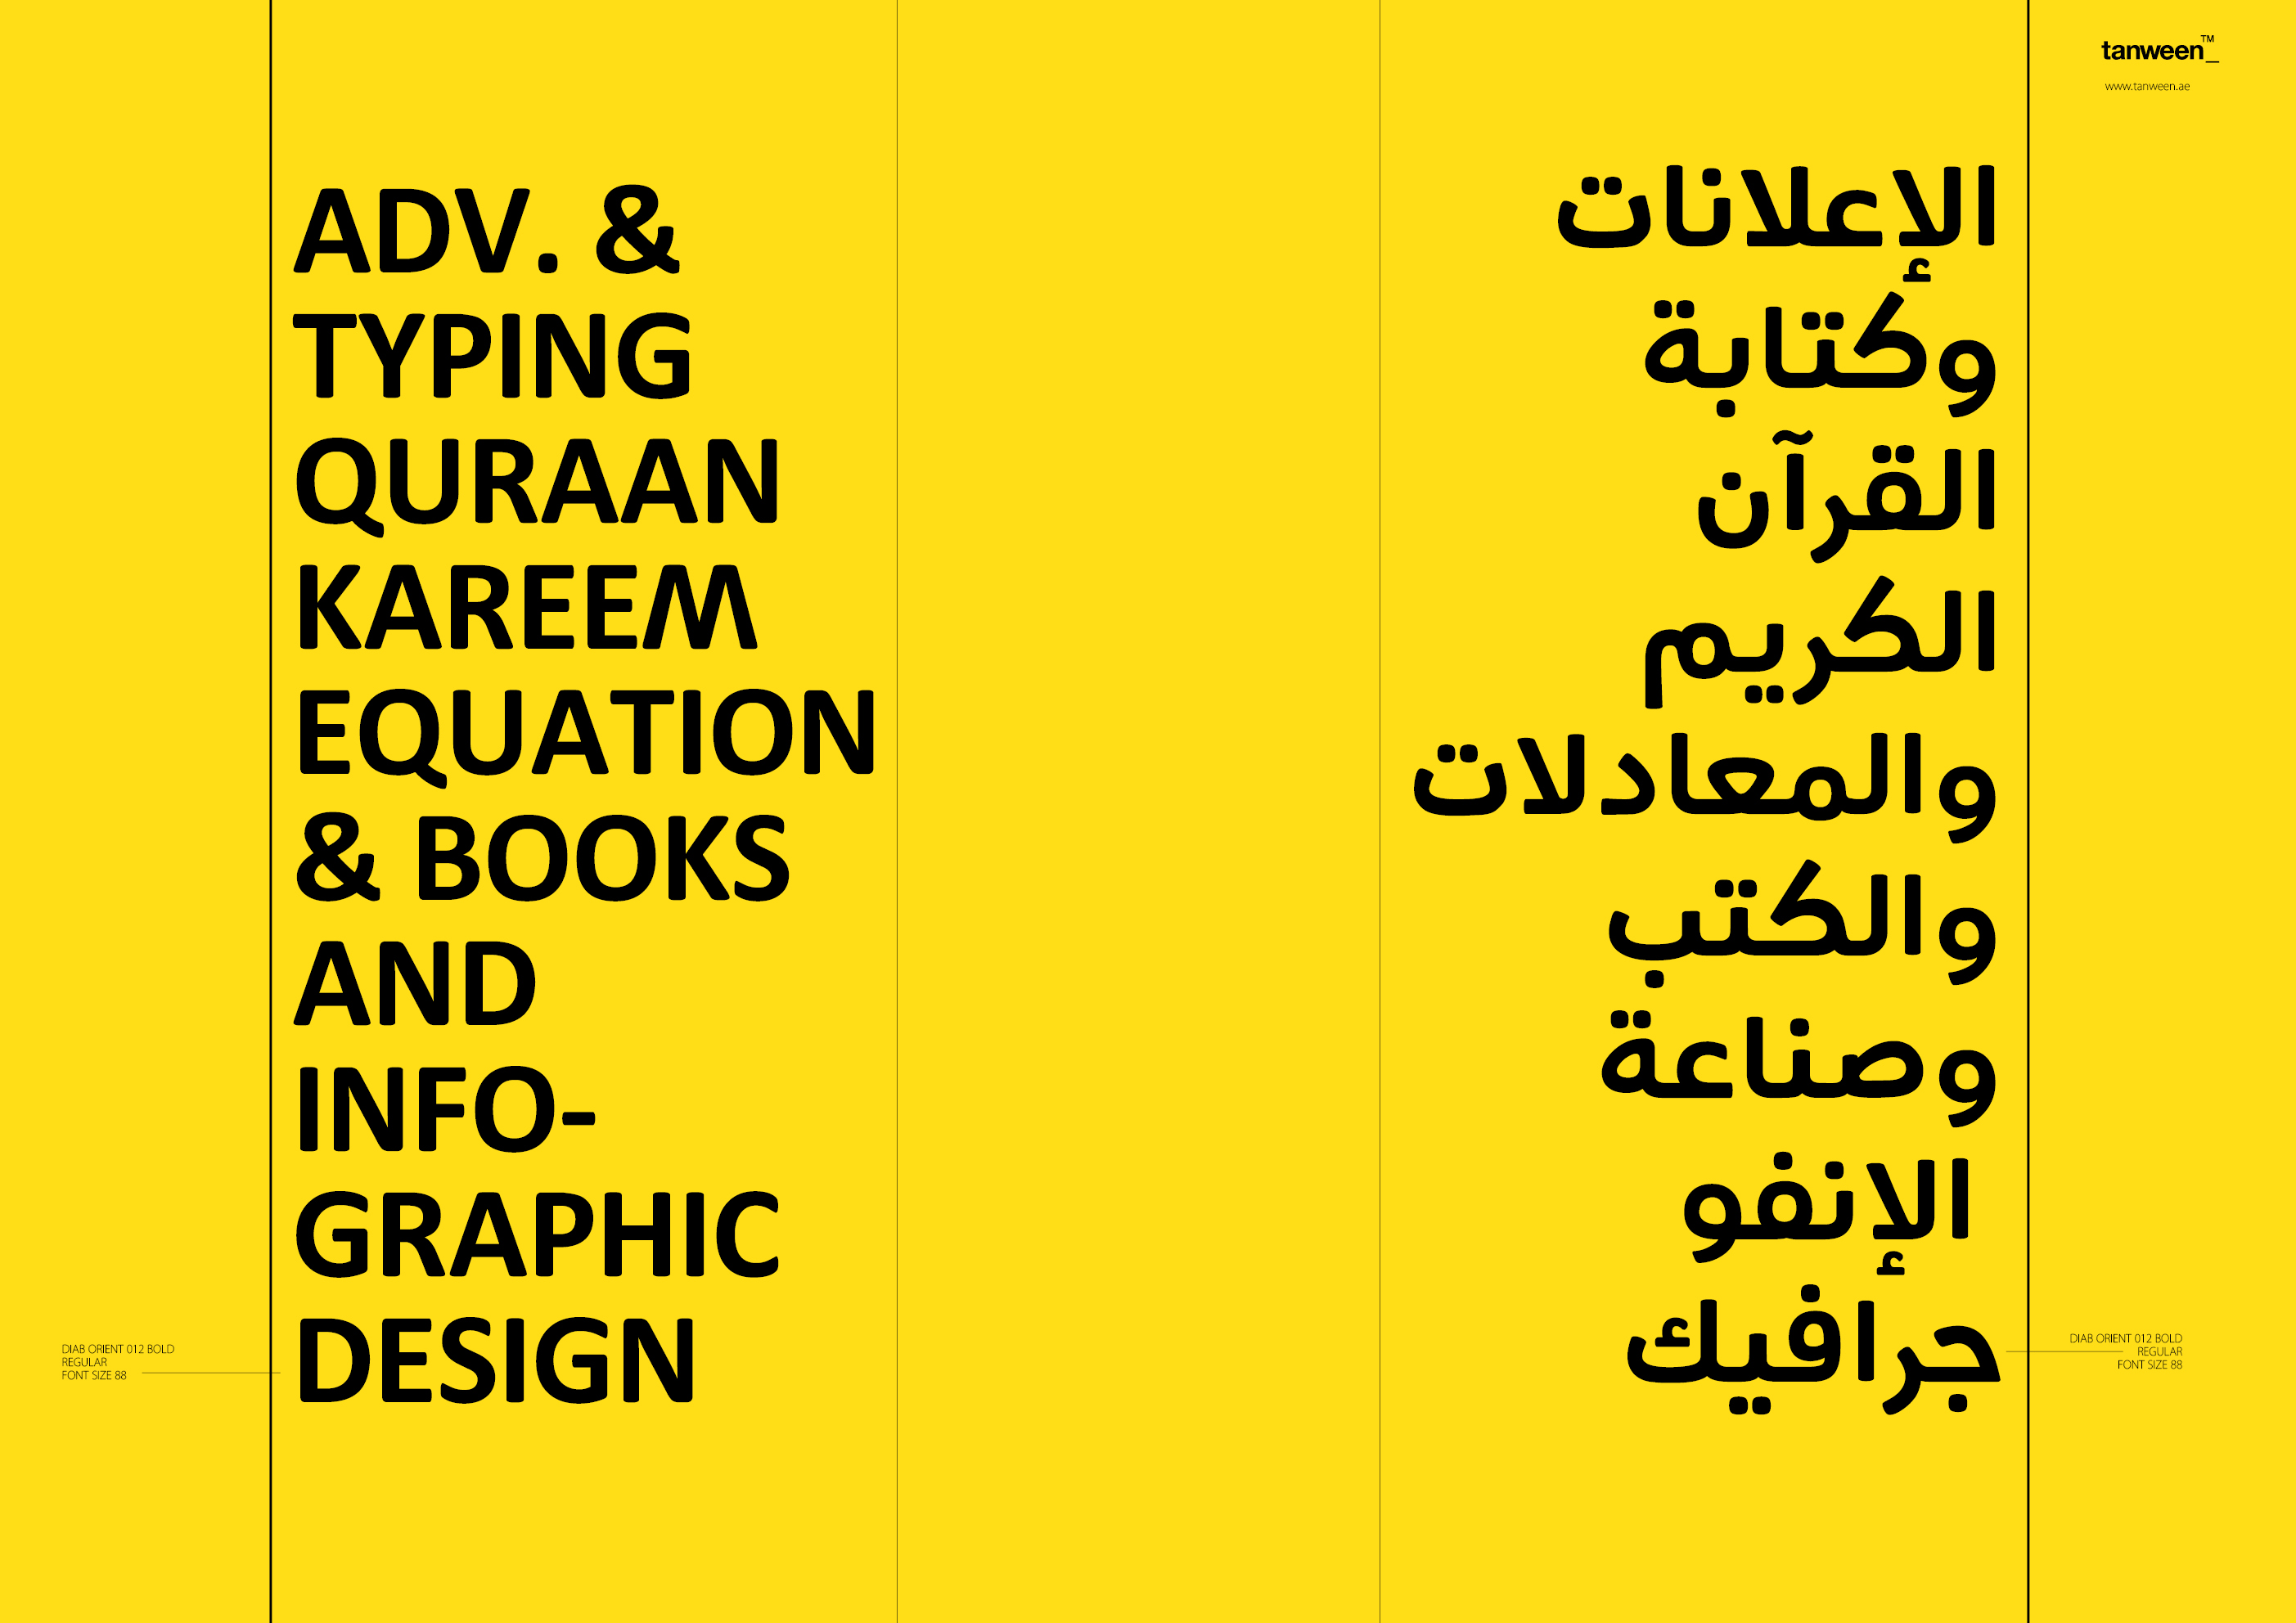 Diab Orient 018 Collection/18 font example image 13